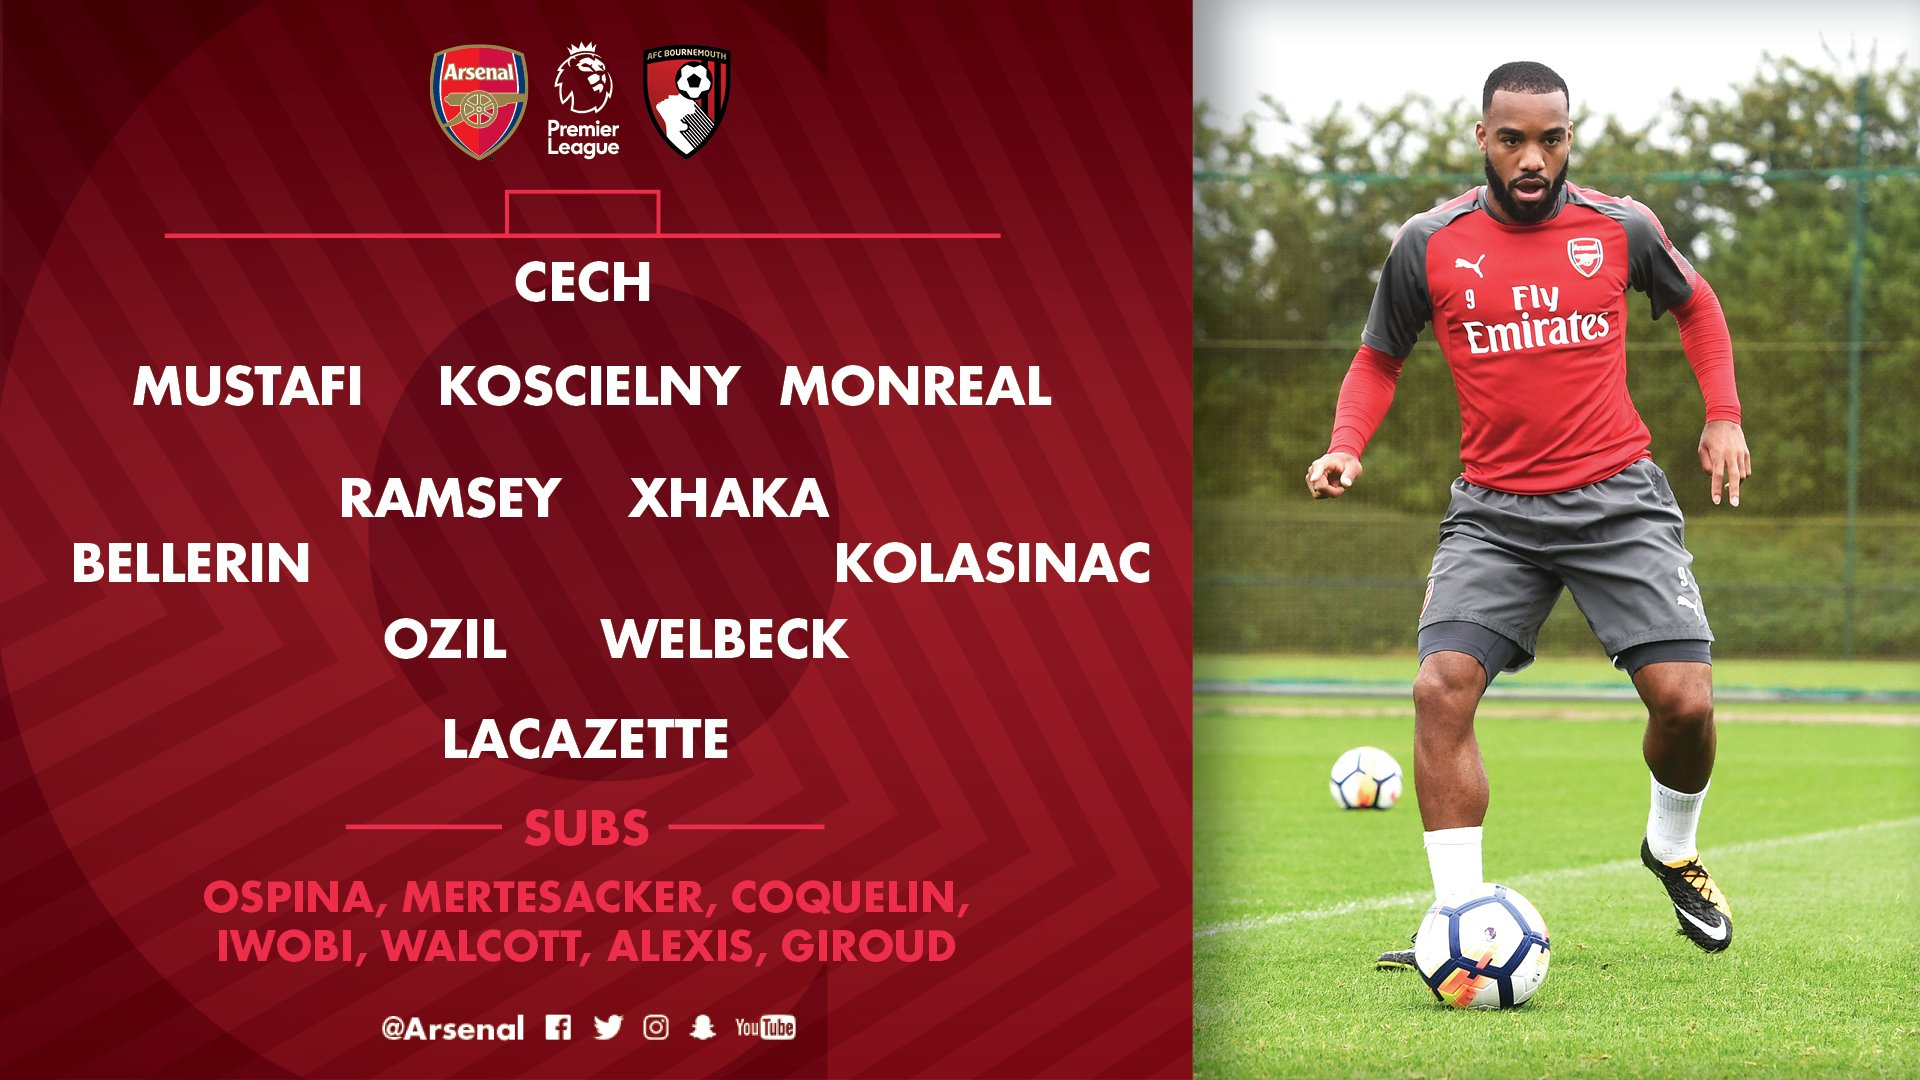 RT @Arsenal: 📋 Here's how we line up against @afcbournemouth this afternoon  #AFCvAFCB https://t.co/x2keS9Sg0T